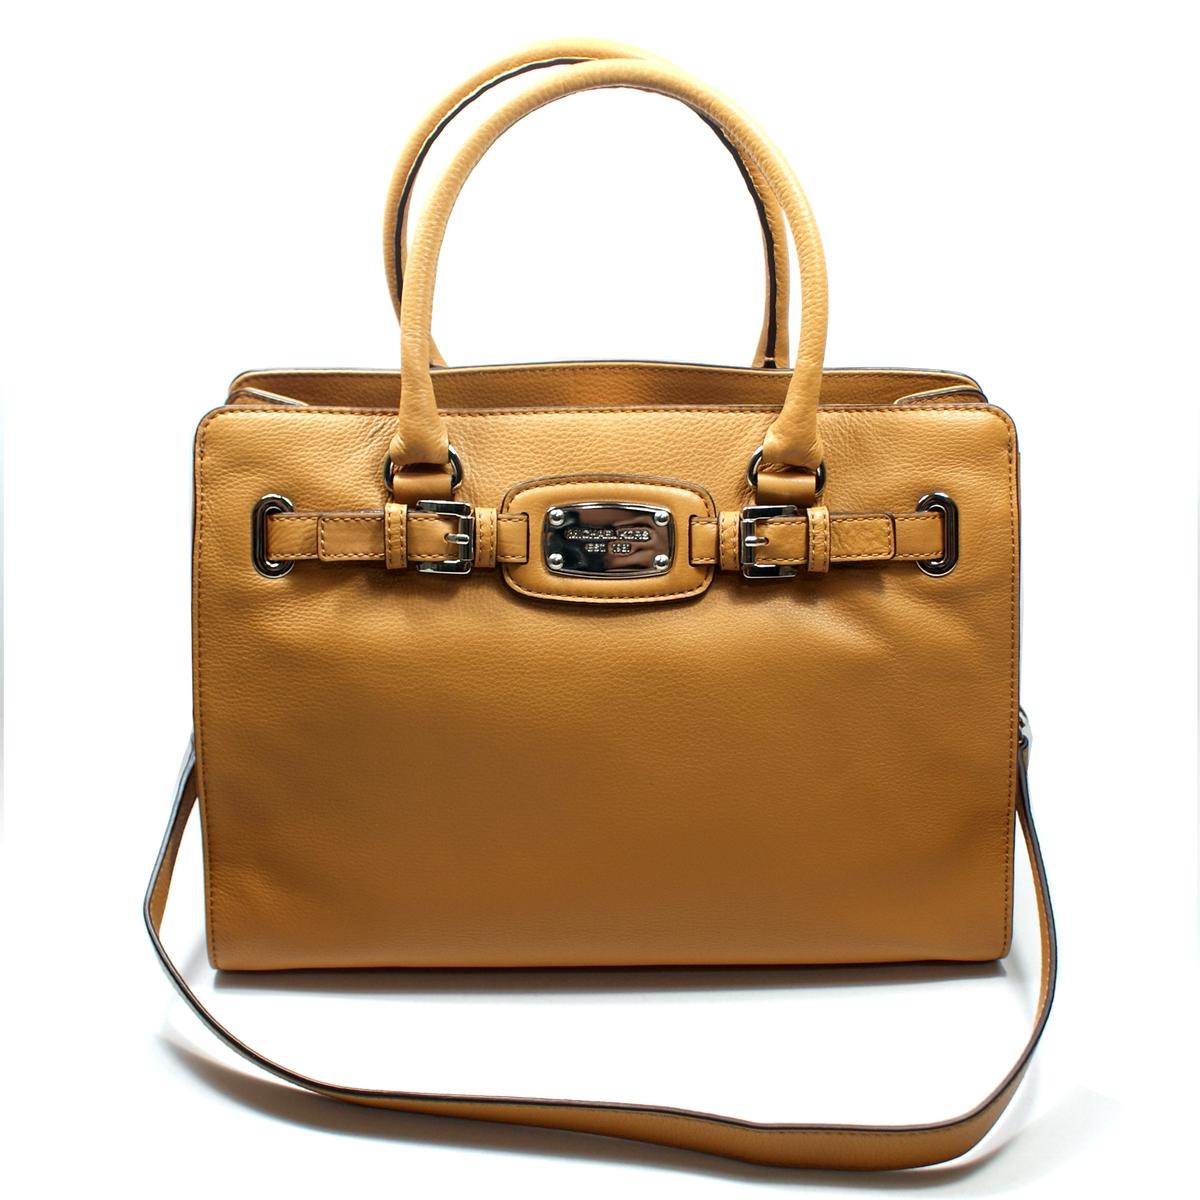 bbc7e0c4fa19 Home · Michael Kors · Hamilton East West Genuine Leather Tote Tan. CLICK  THUMBNAIL TO ZOOM. Found ...